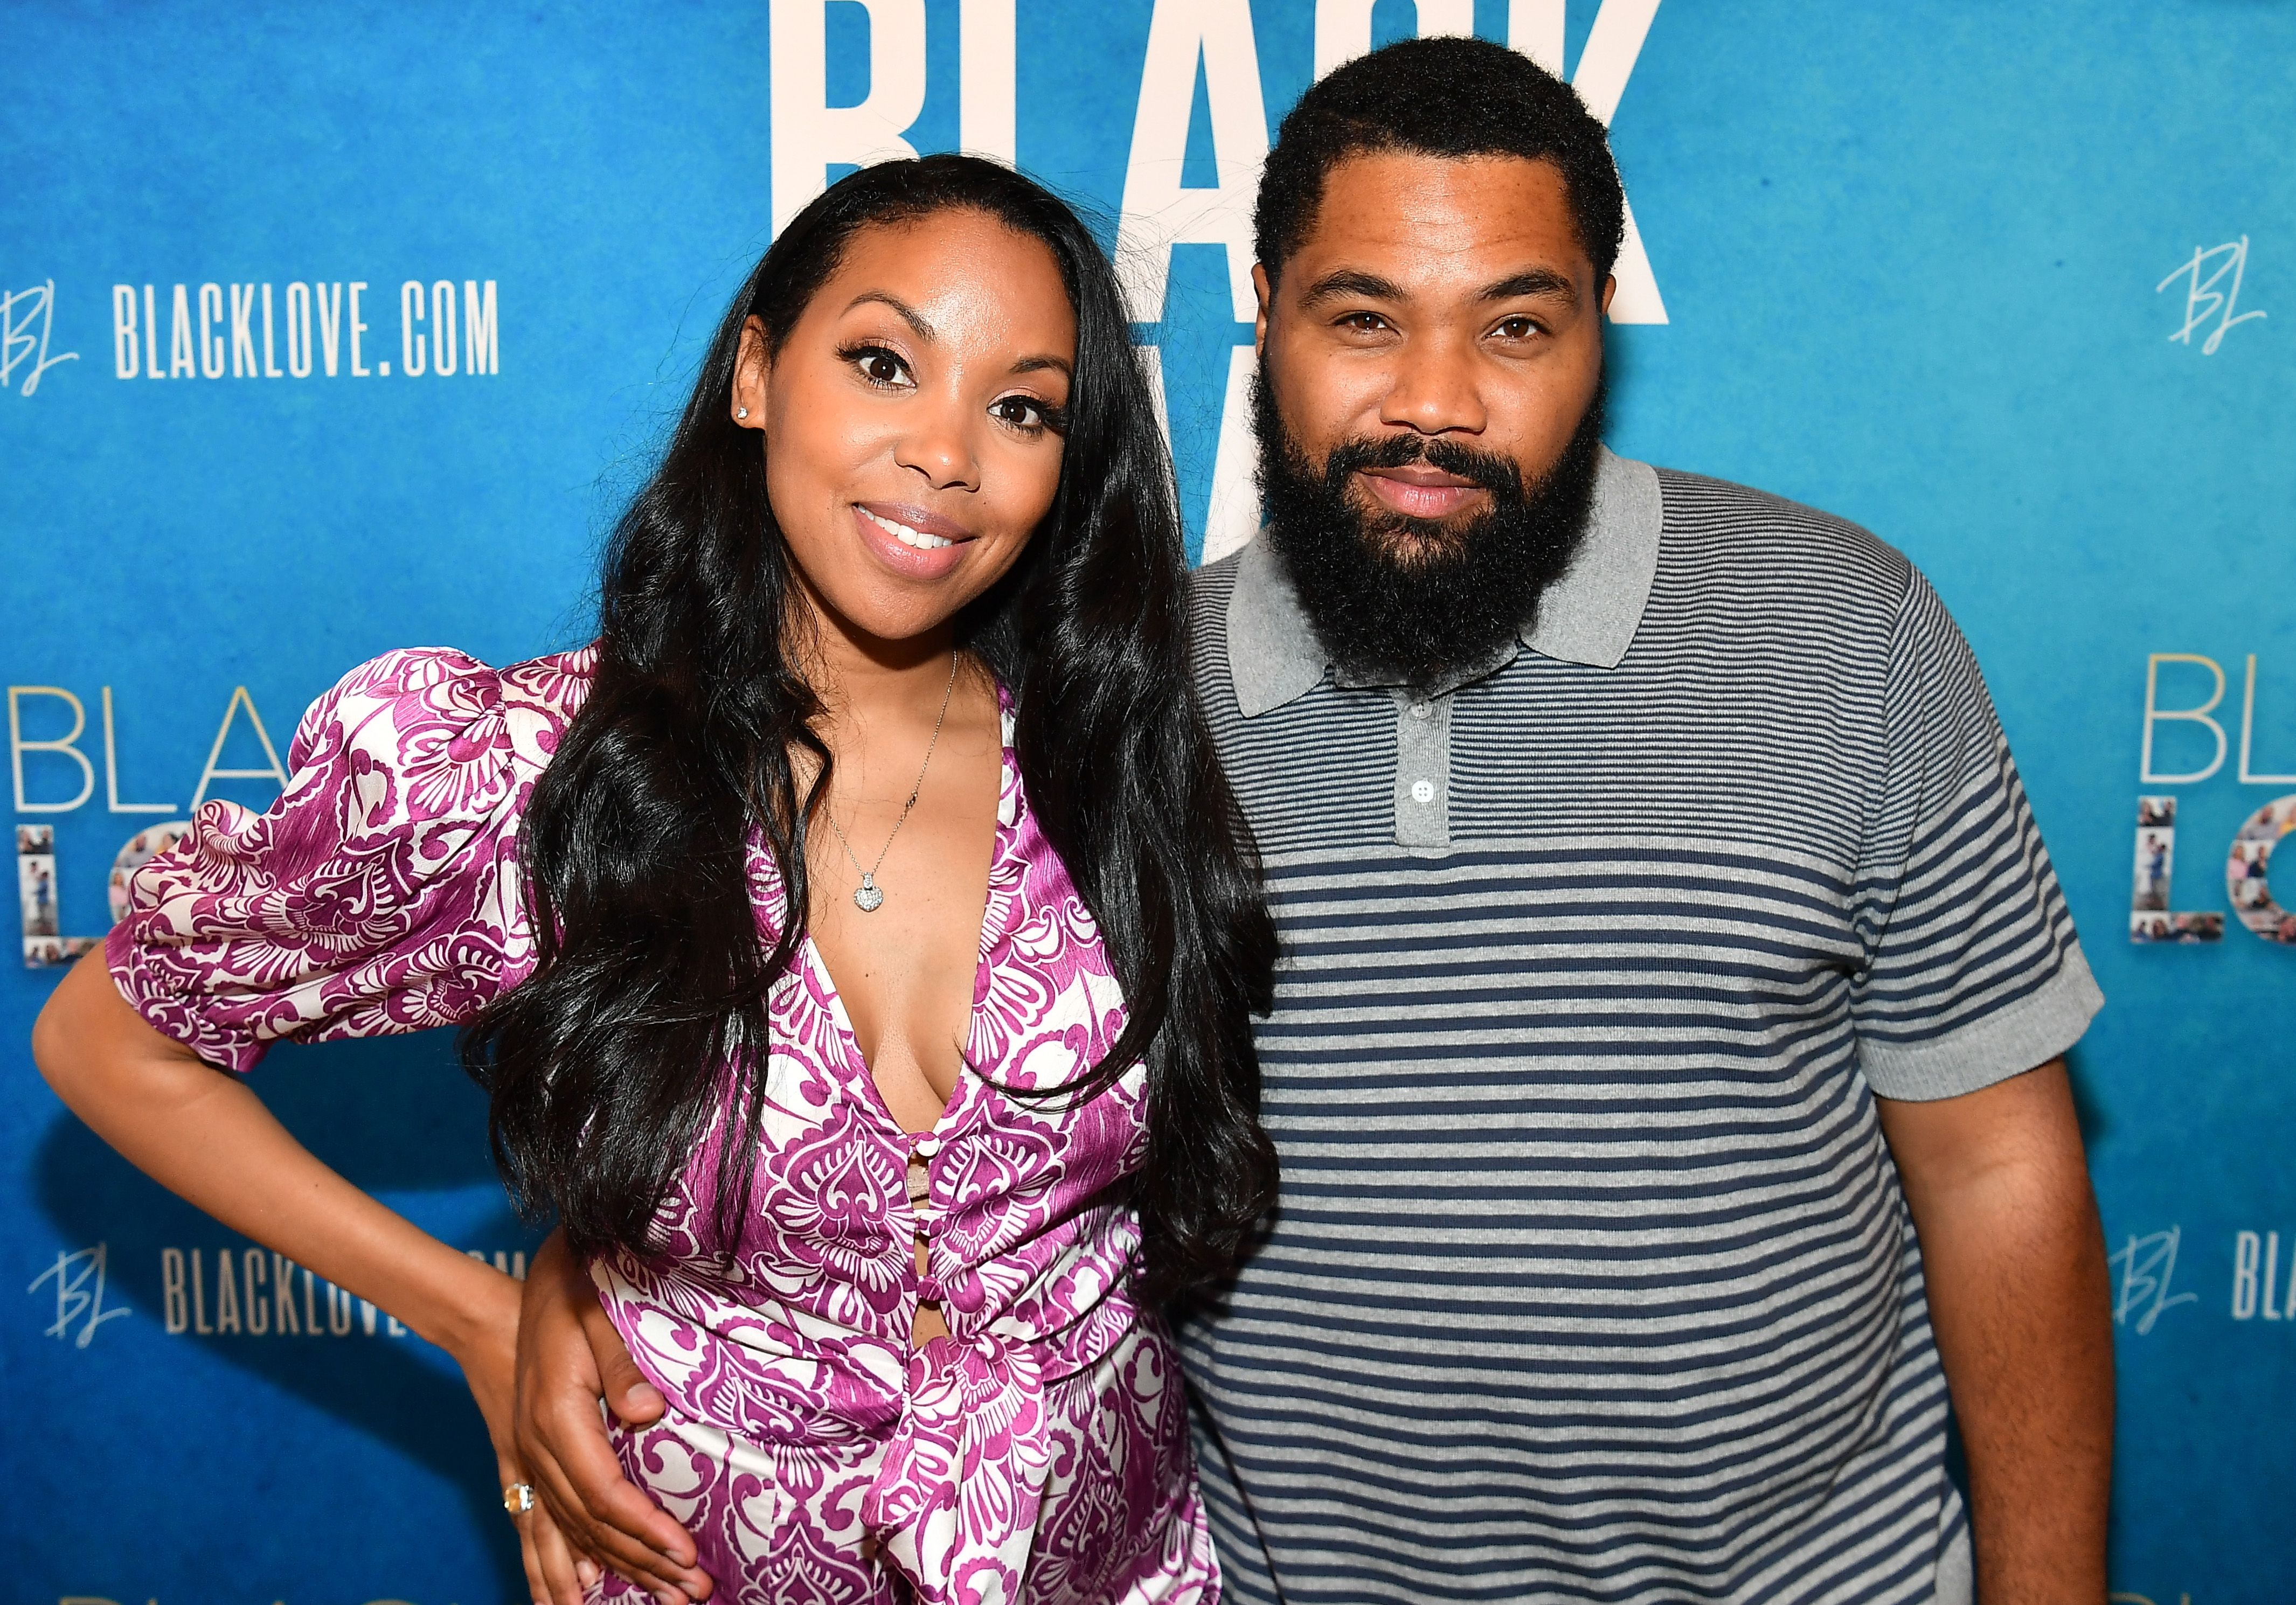 The Relationship Goals, Secrets, and Season-Three Surprises in OWN's 'Black Love'